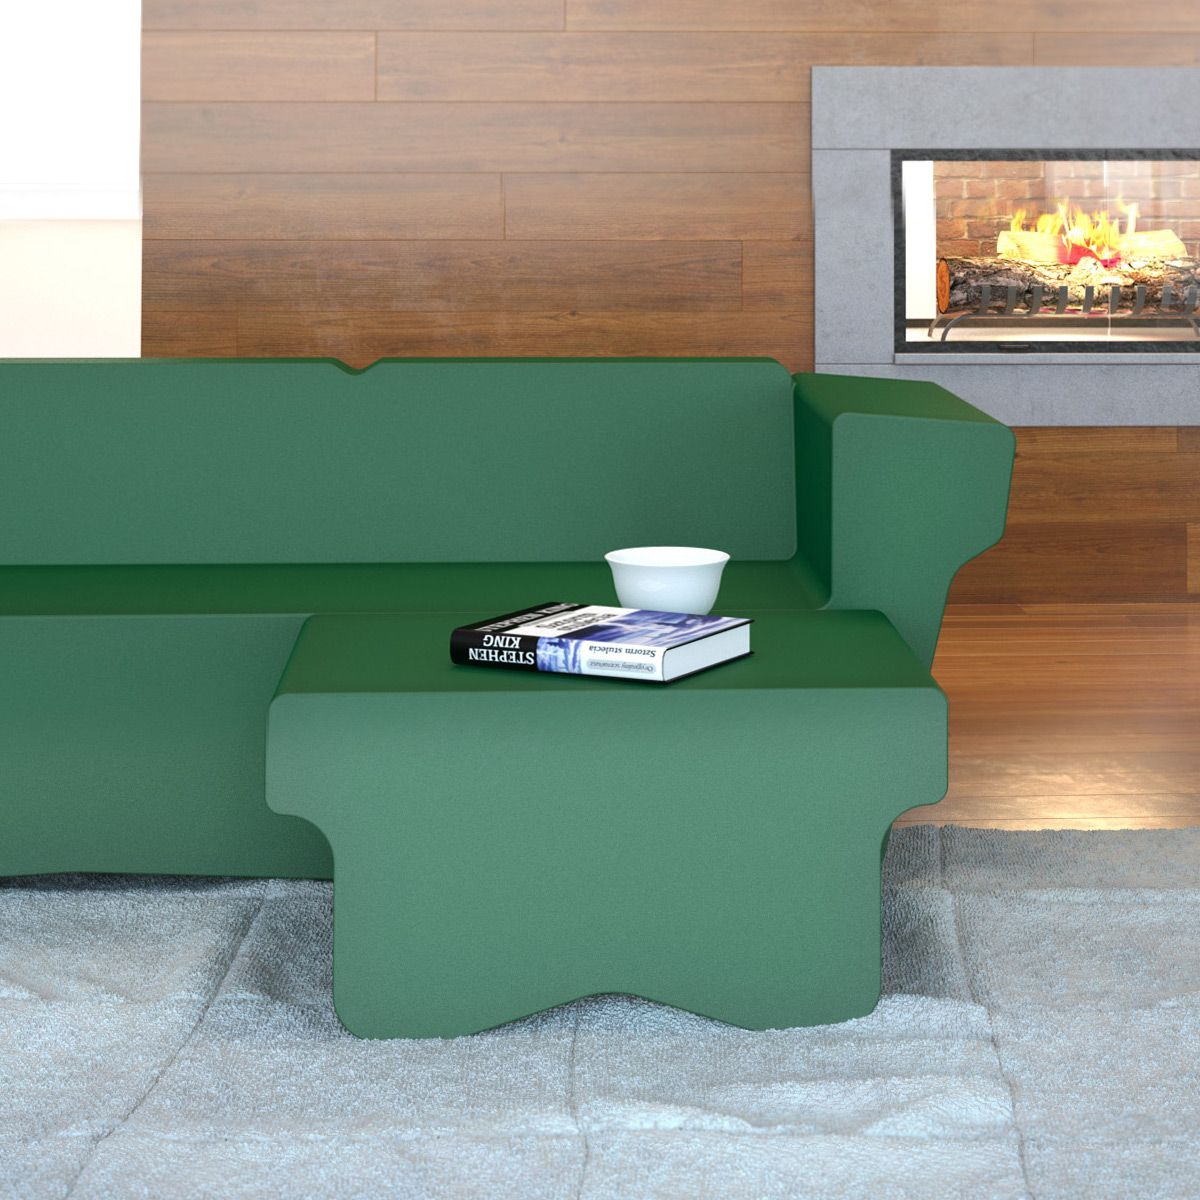 pouf table basse wingchester stratta ebay. Black Bedroom Furniture Sets. Home Design Ideas